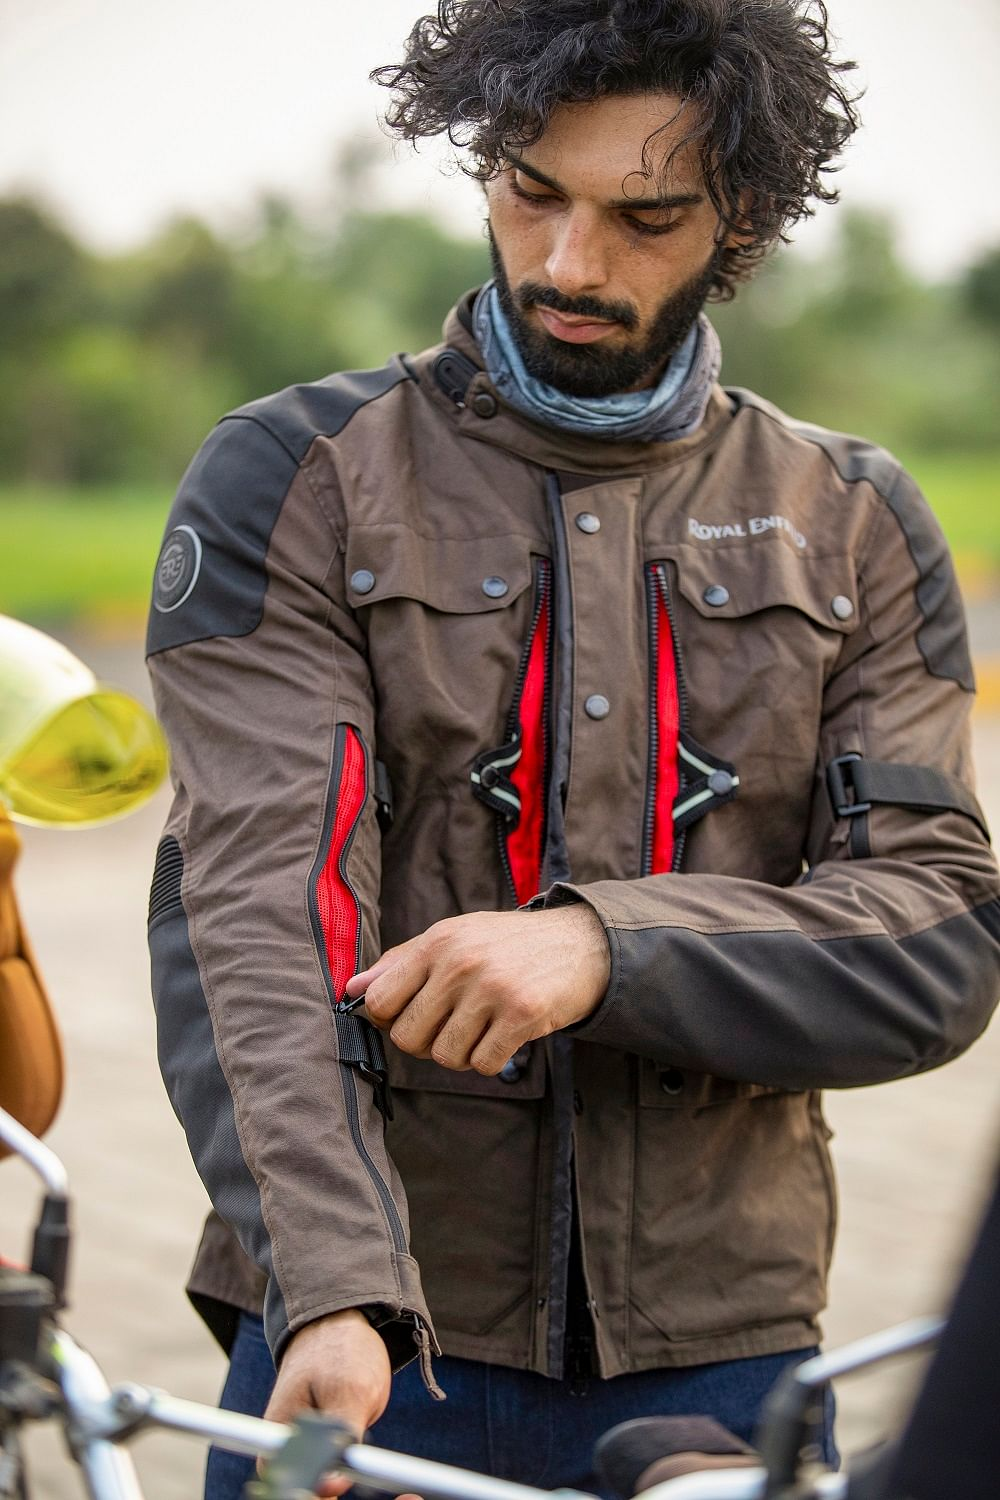 Sanders - another jacket that is suitable for highway touring